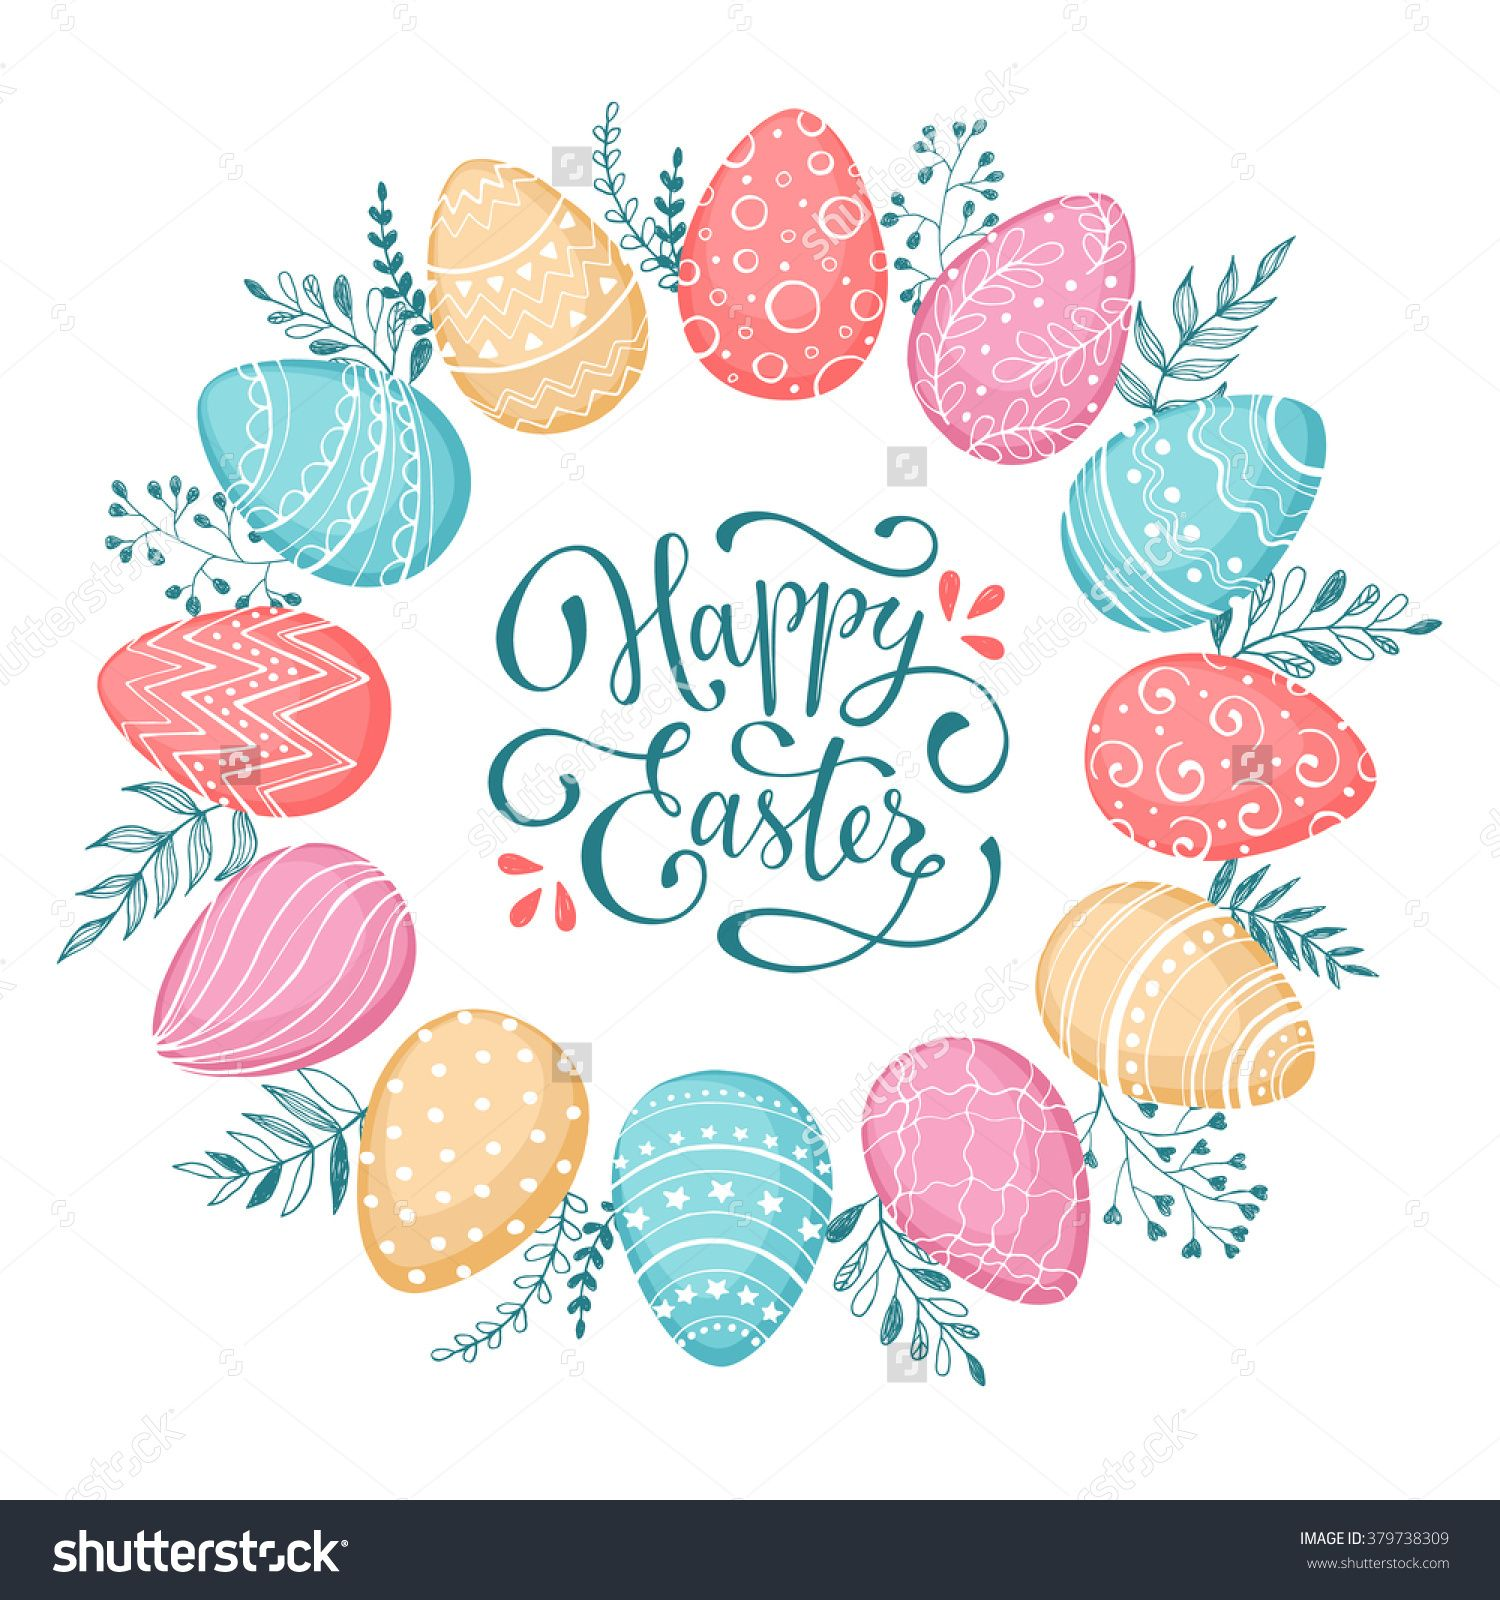 Photo of Easter Wreath Easter Eggs Hand Drawn Stock Vector (Royalty Free) 379738309